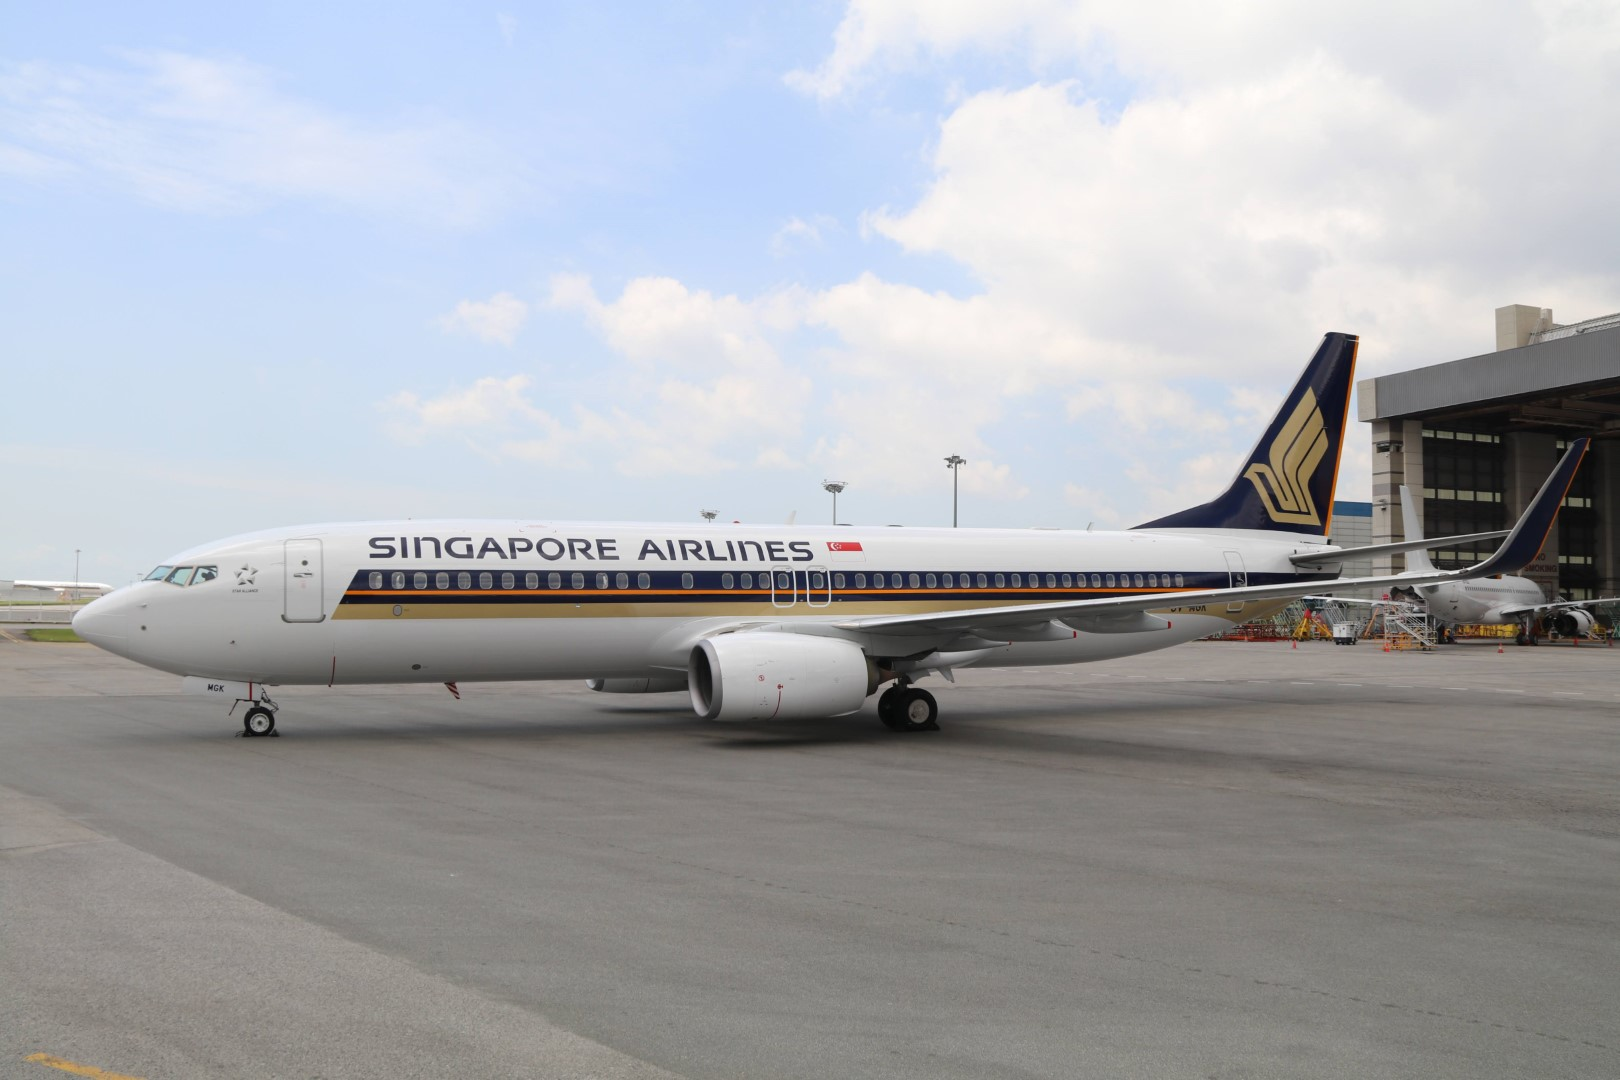 A Singapore Airlines Boeing 737-800 (Photo: Singapore Airlines)